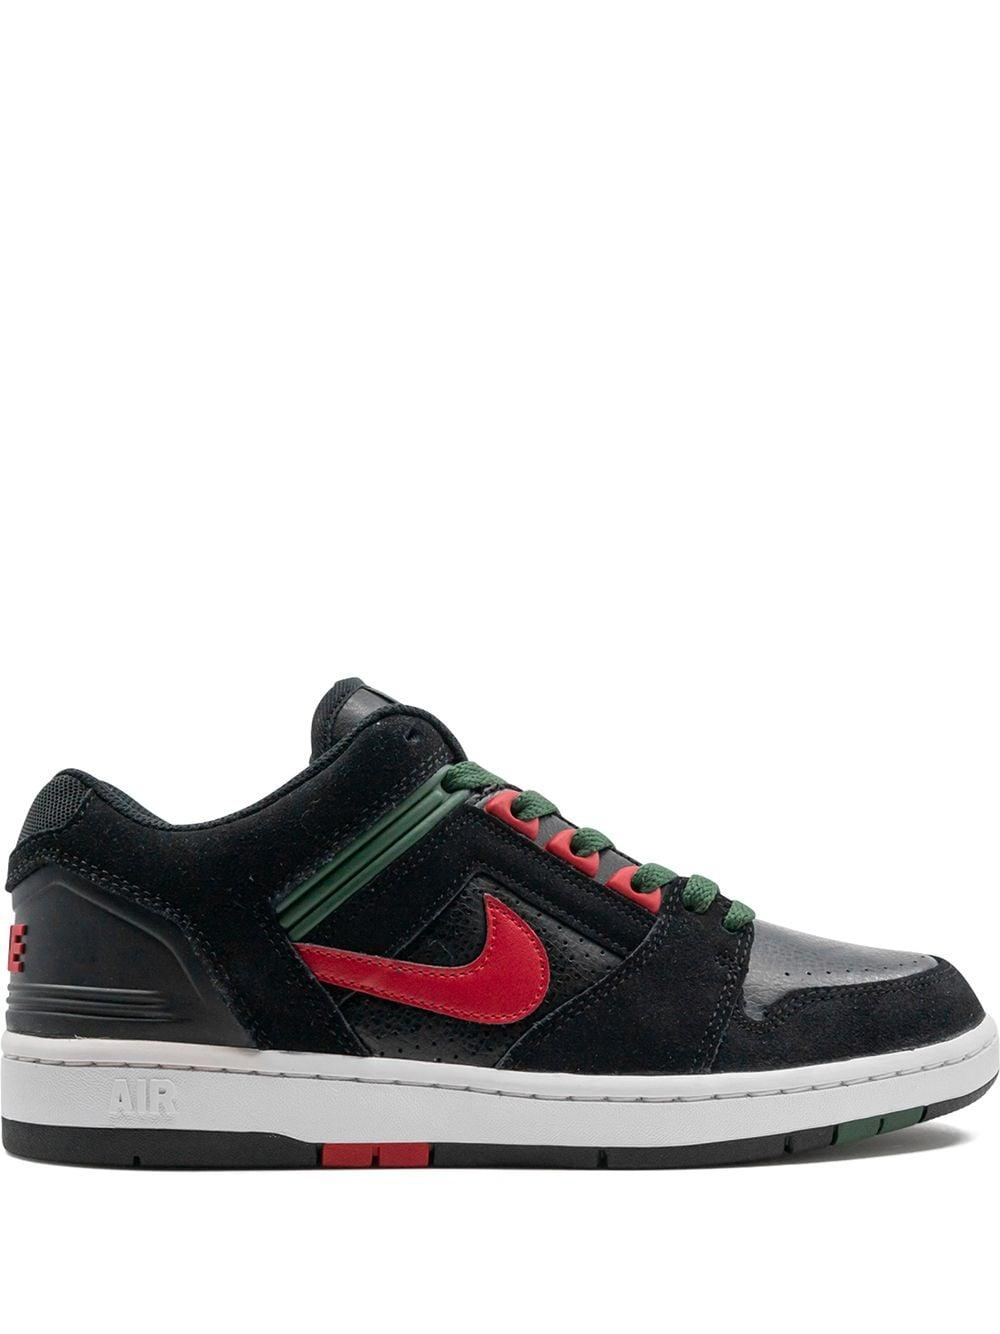 Nike Lace Sb Air Force 2 Low Sneakers in Black for Men - Lyst